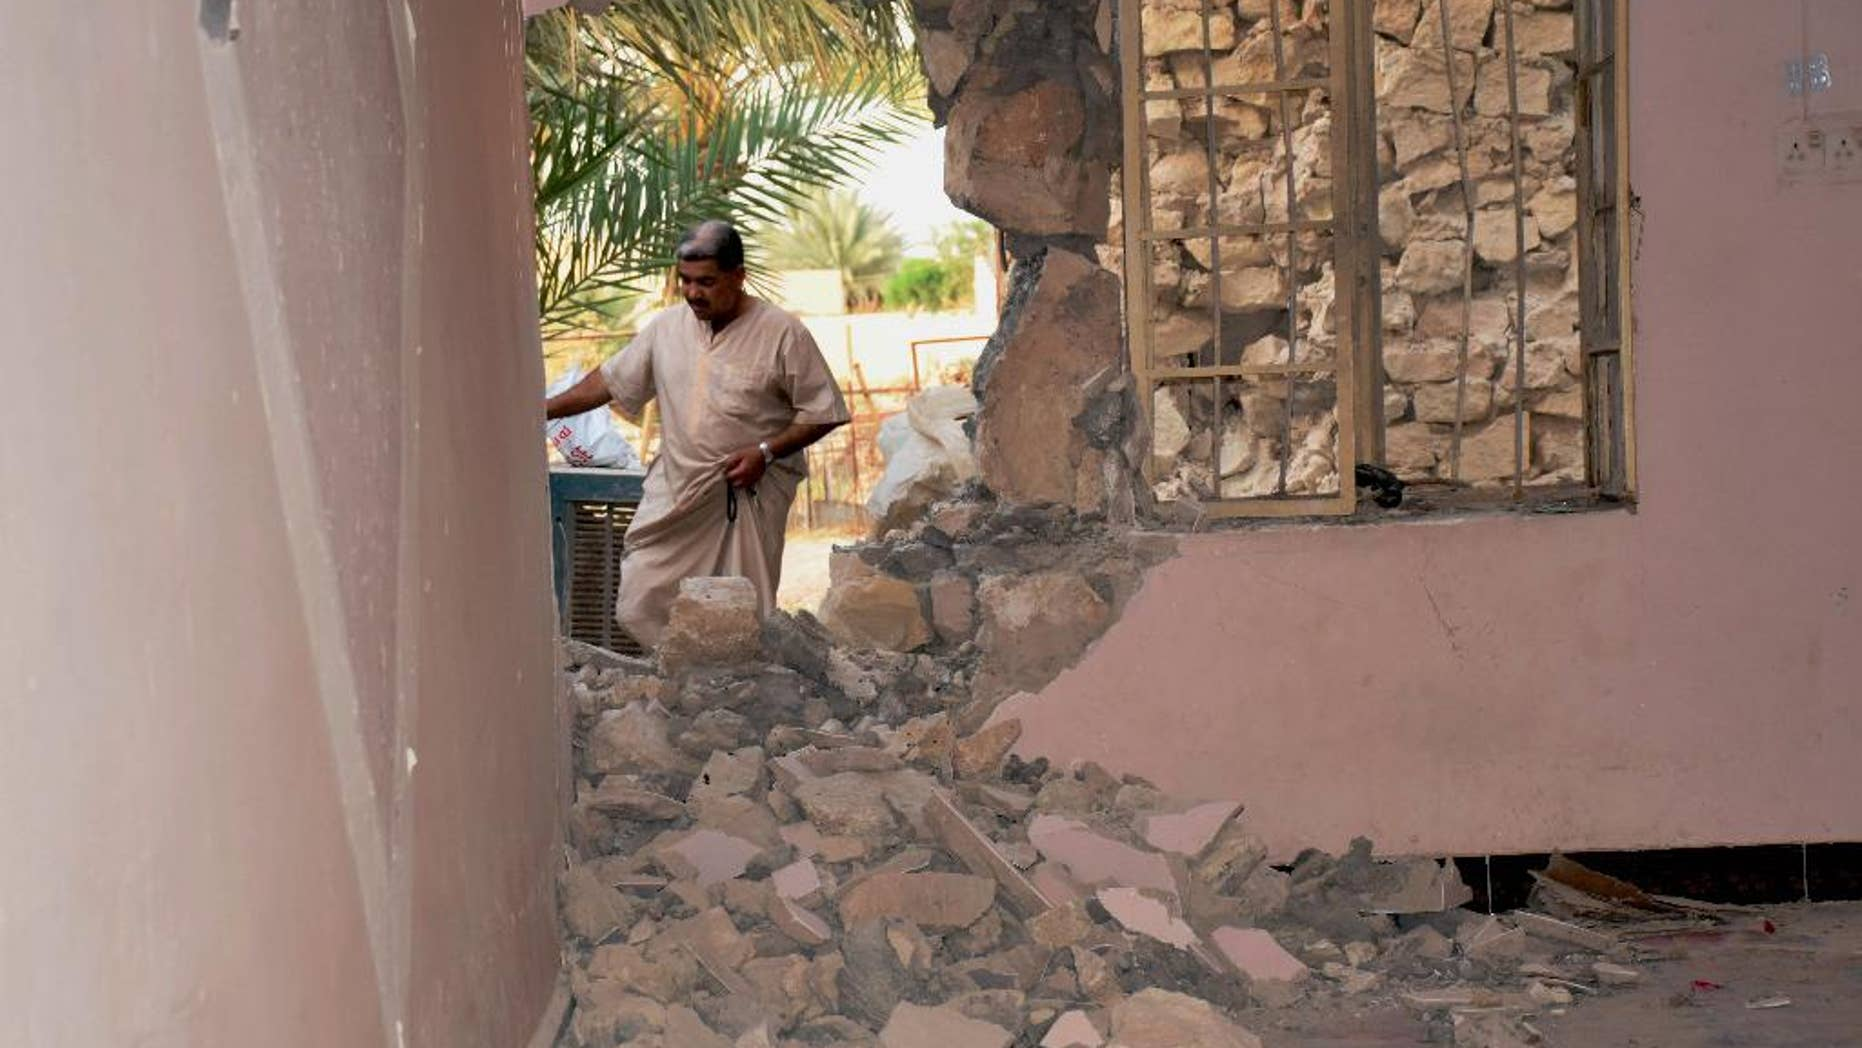 A man inspects his house damaged after a bomb attack by Islamic State group extremists in Khalidiya, 60 miles (100 kilometers) west of Baghdad, Iraq, Sunday, Sept. 20, 2015. (AP Photo)